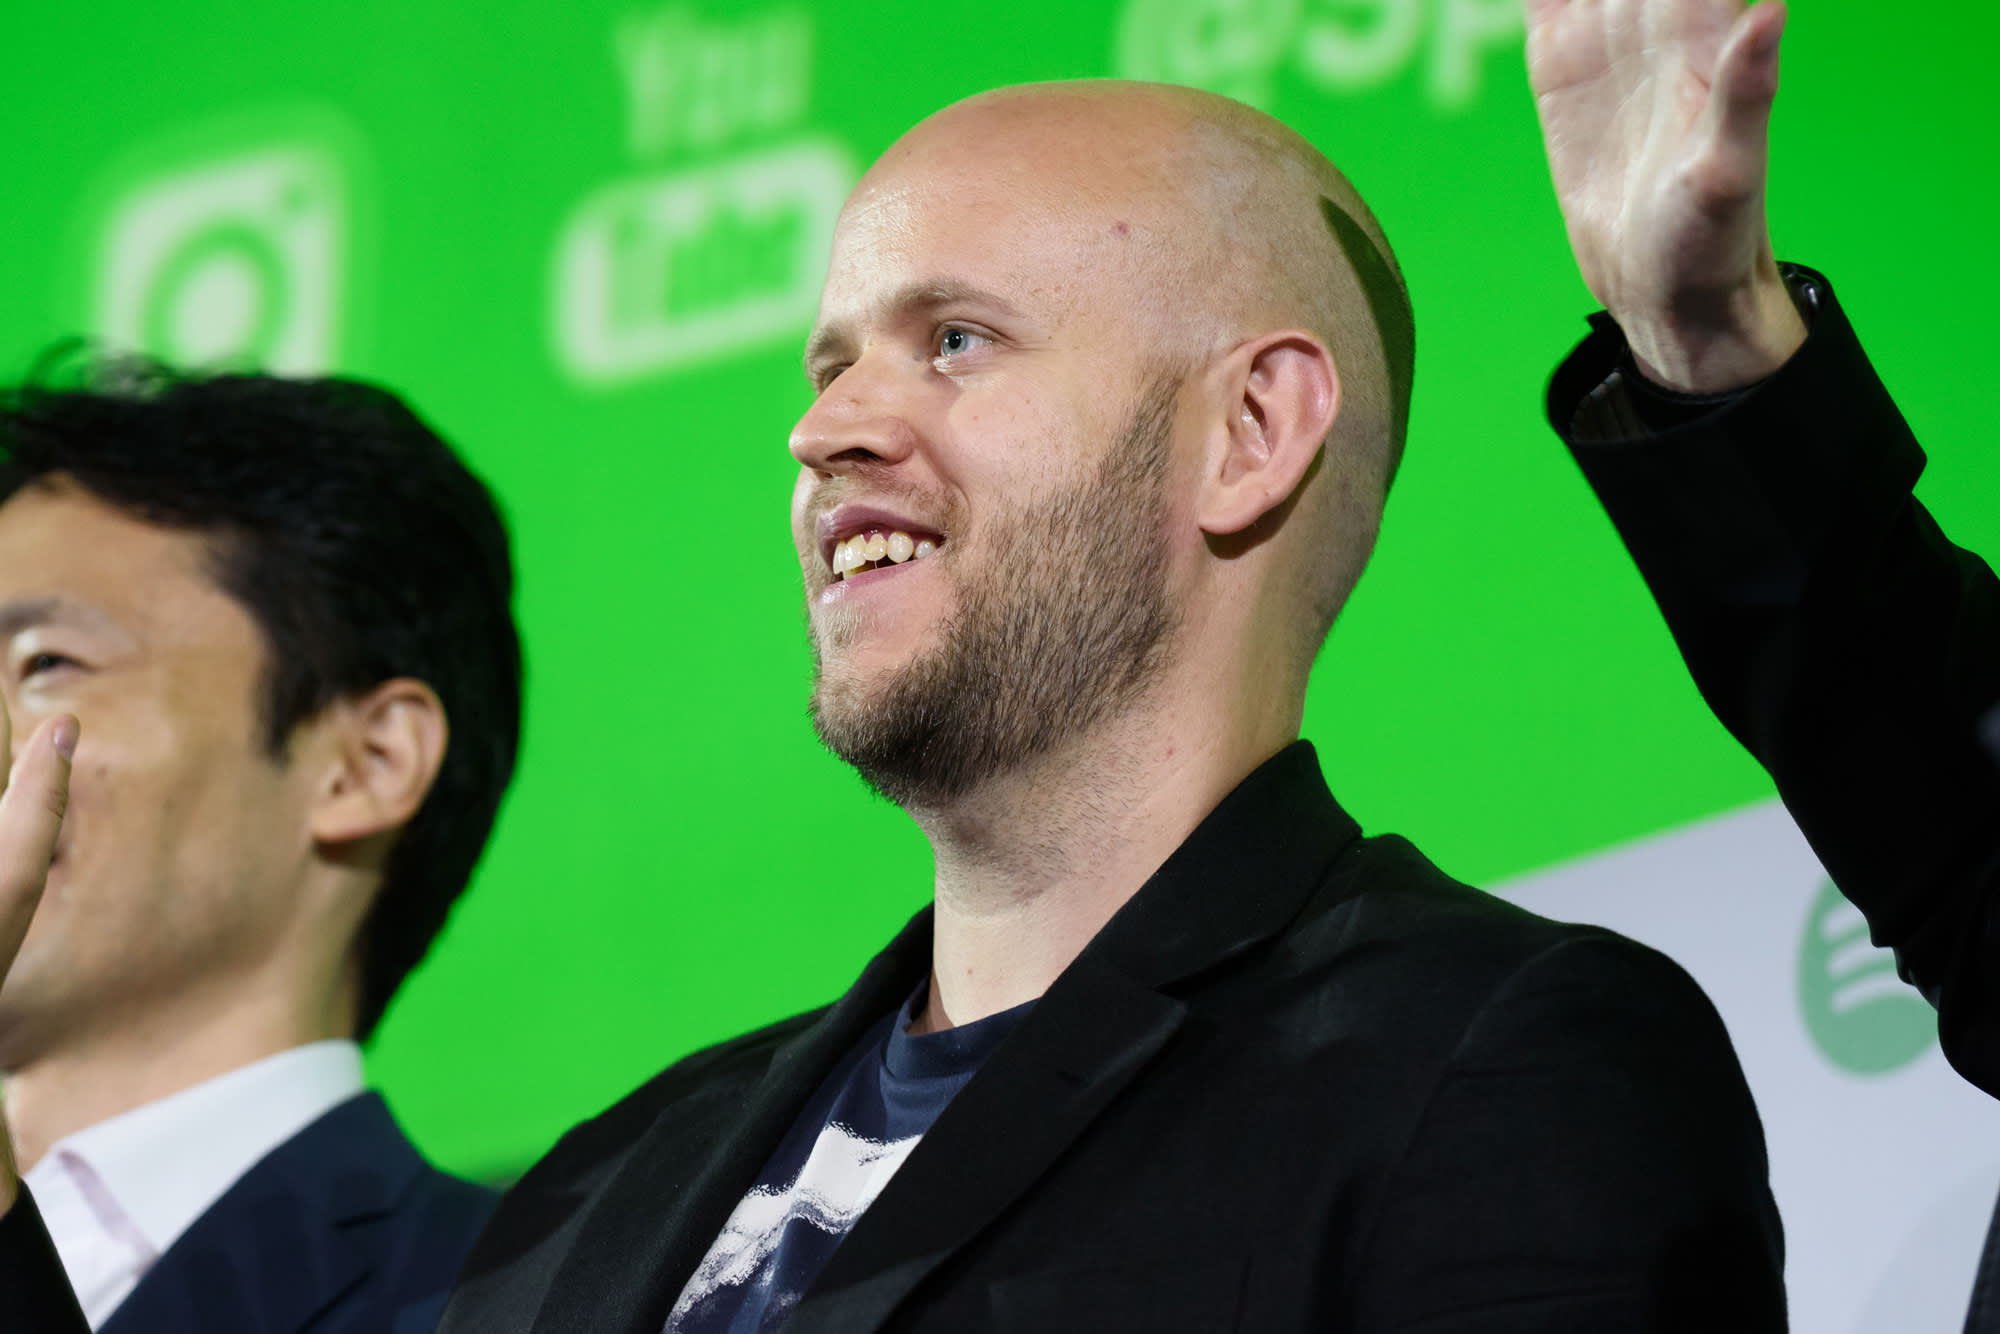 Spotify suspends political ads for 2020, taking the opposite stance from Facebook